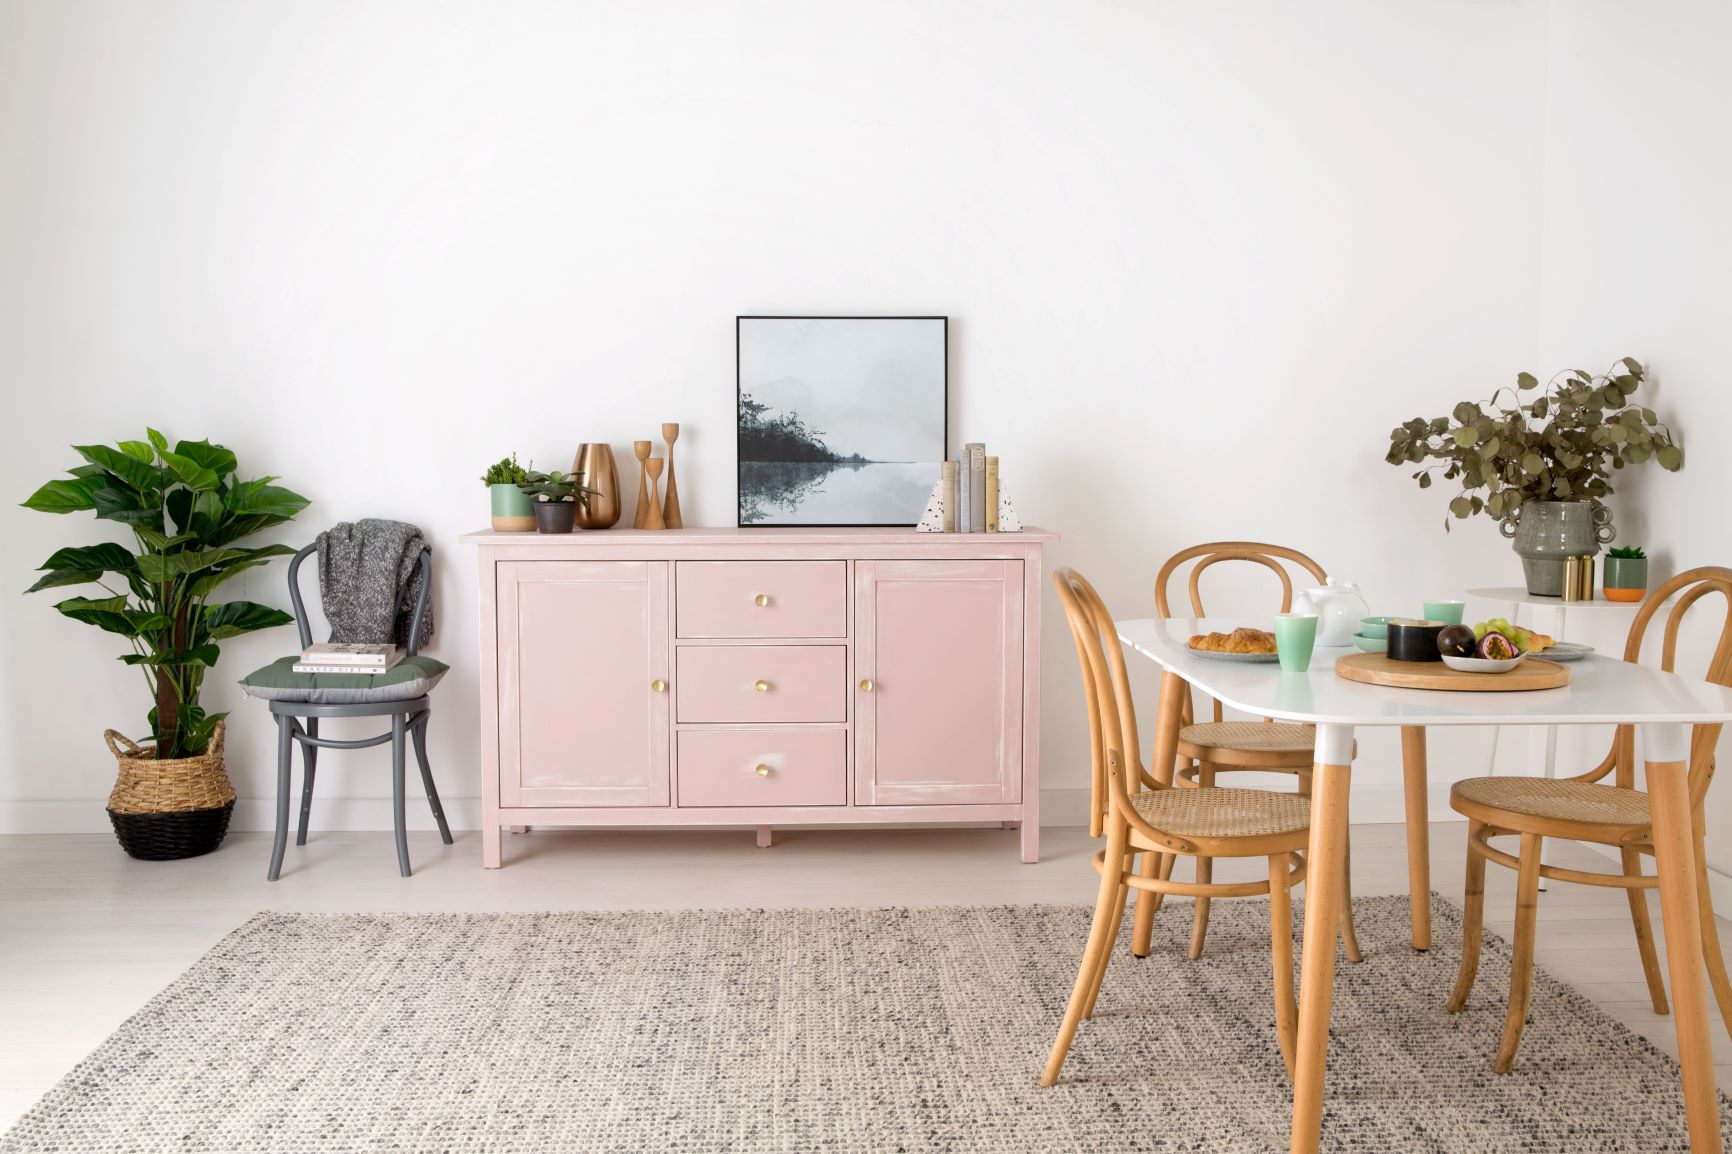 How to upcycle your furniture and accessories